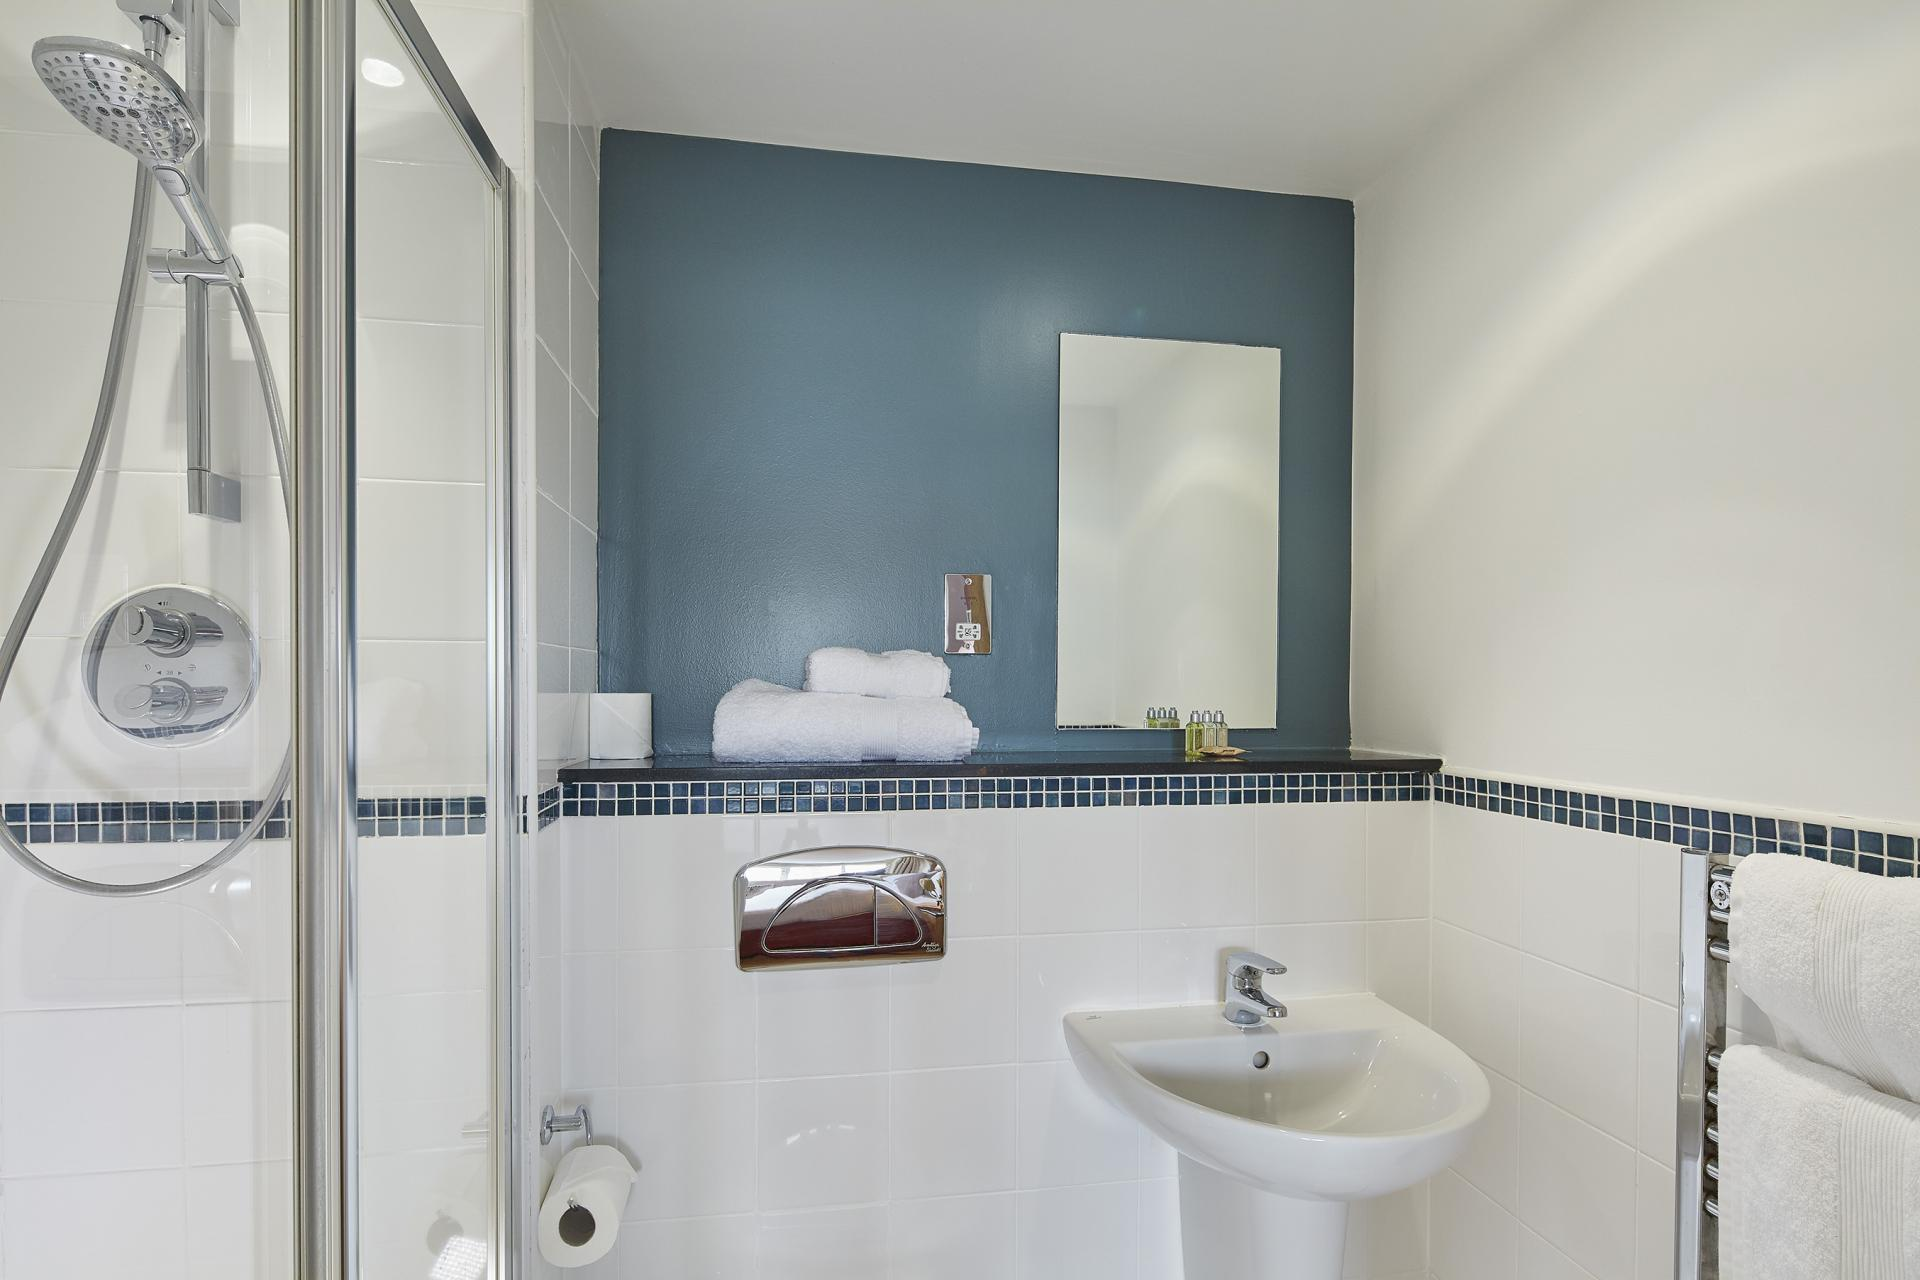 Bathroom at Limehouse Apartments, Limehouse, London